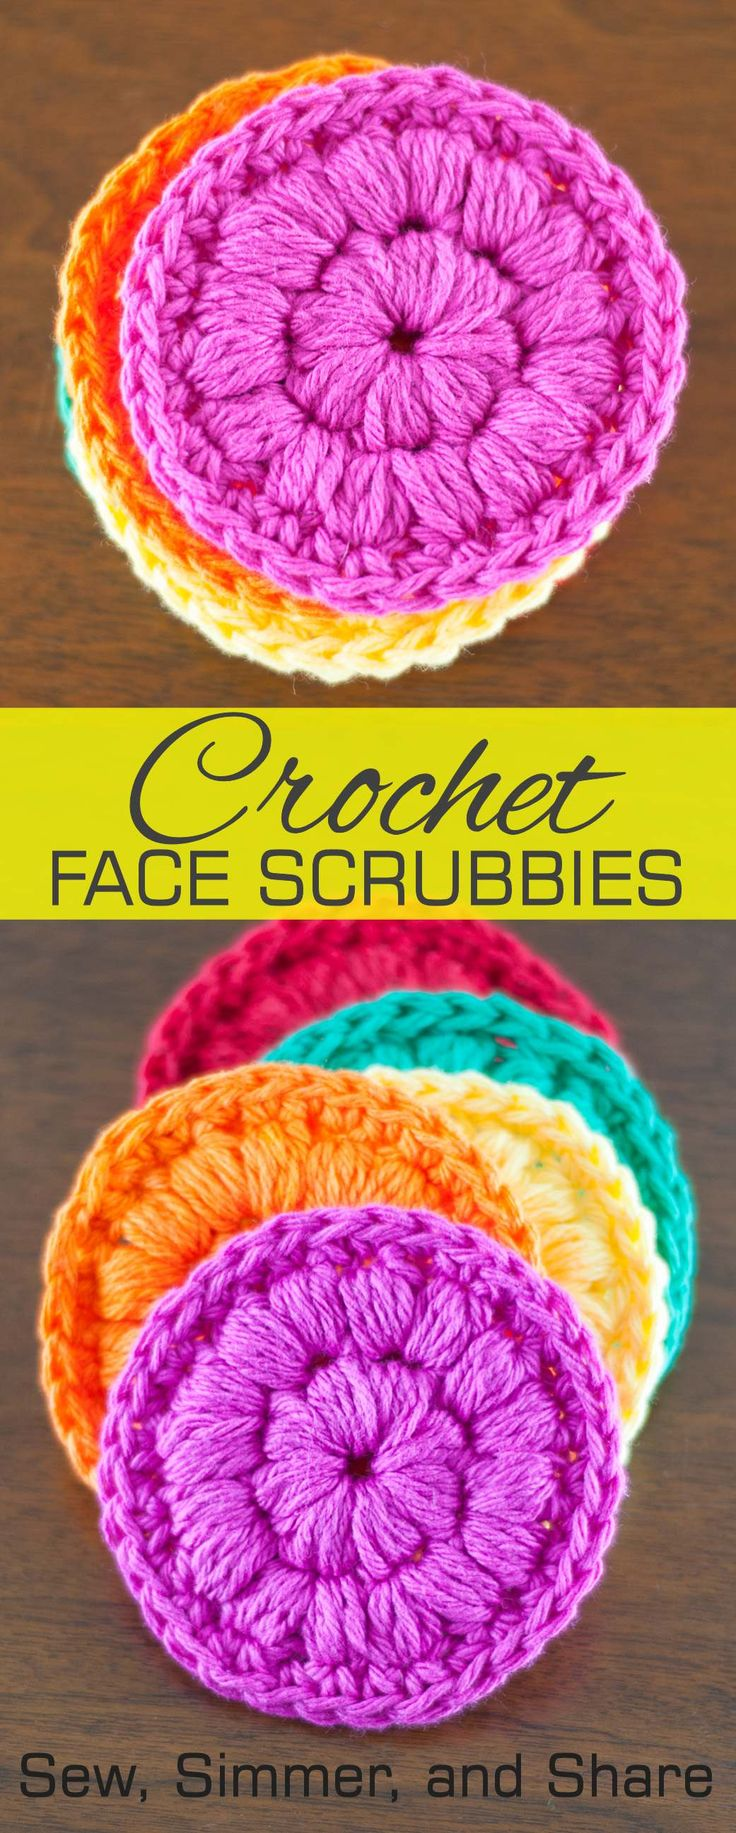 crochet puff stitch instructions